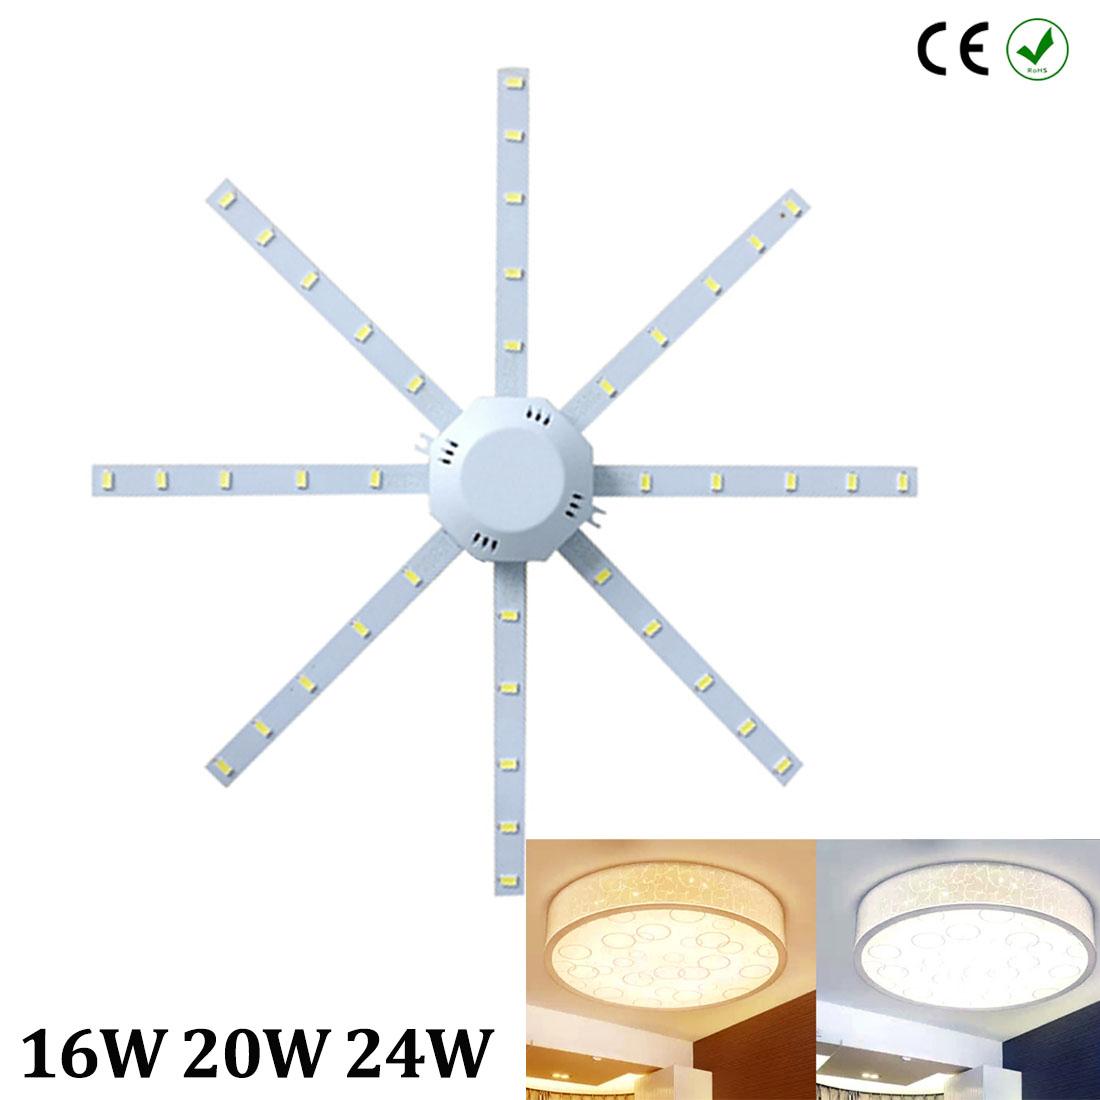 Led Bulbs & Tubes Table Mount Chip Etc Ceiling Saving Light 12w Board Magnetic 24w Round 20w Octopus Easy Ceiling 16w Smd Install Energy Lamp Led Lights & Lighting